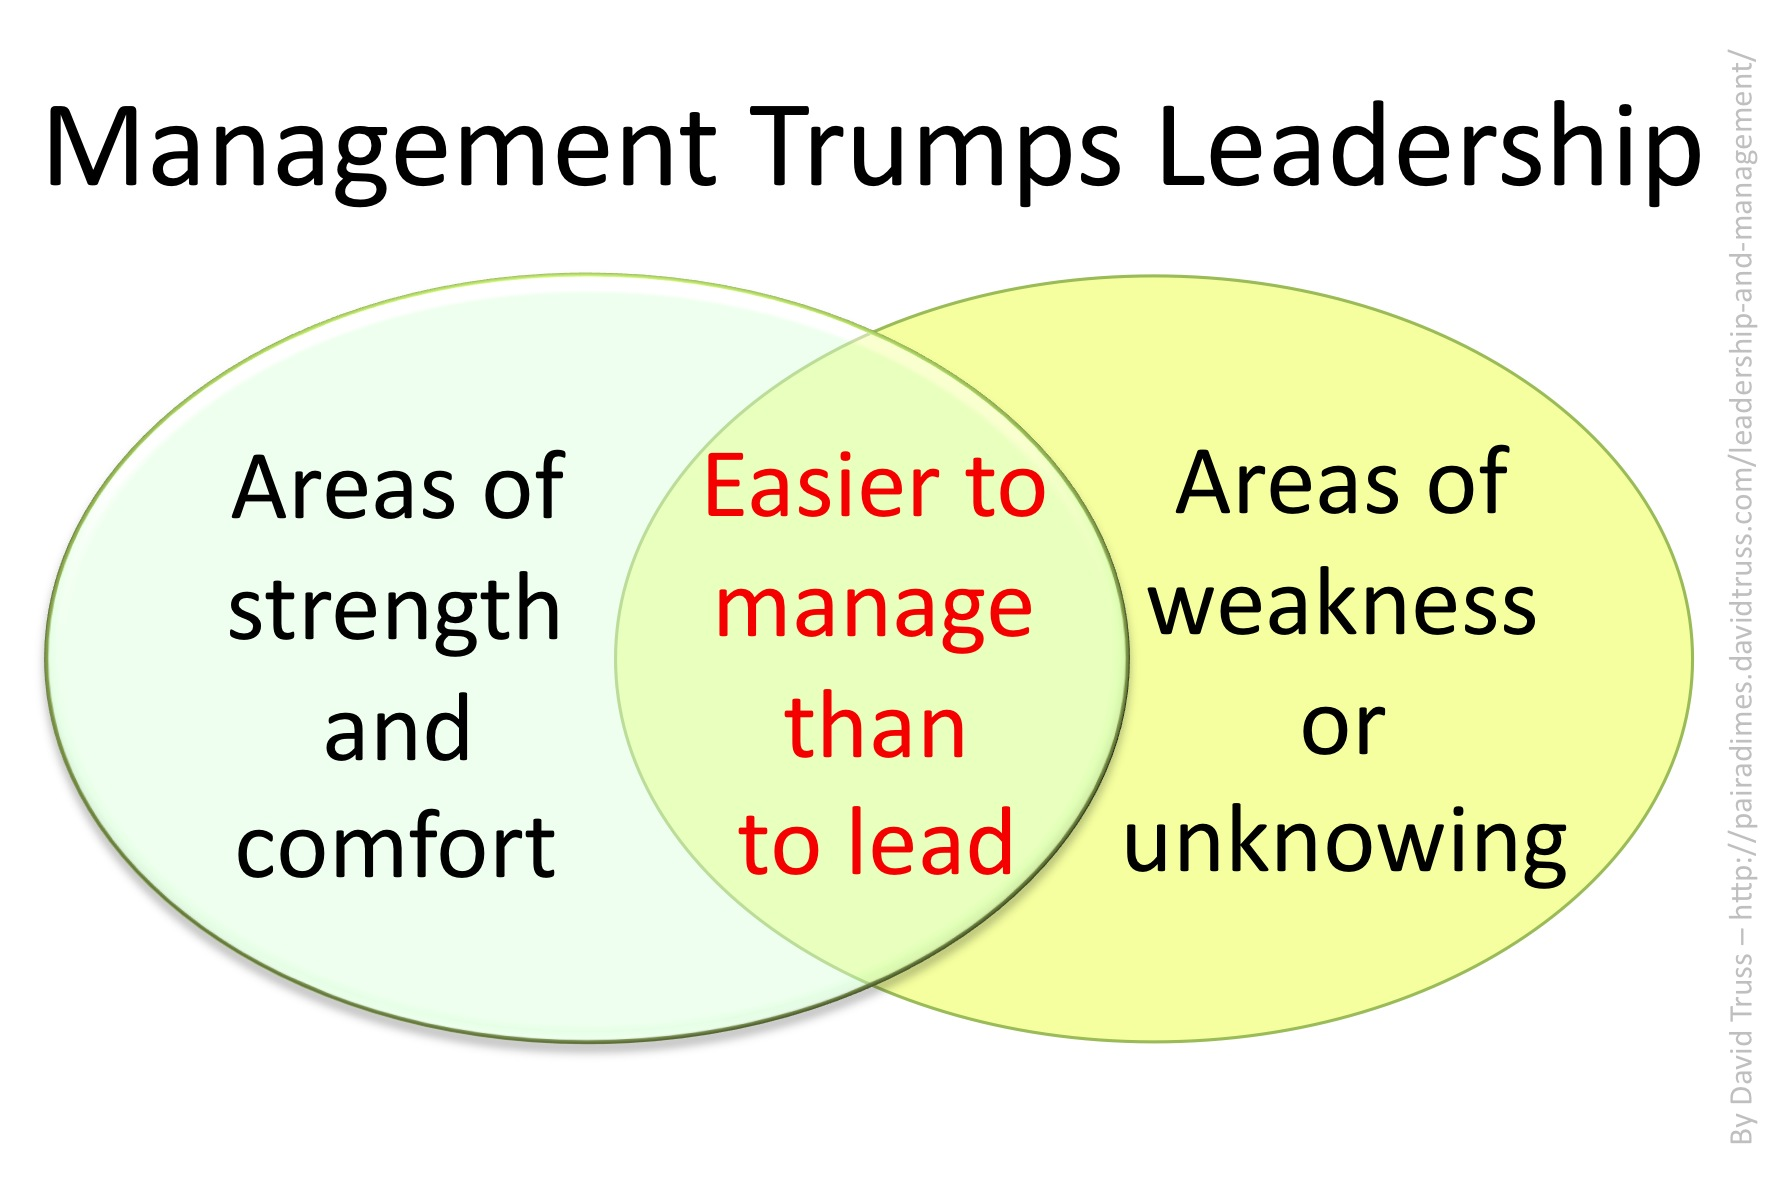 leadership and management david truss pair a dimes for your management tumps leadership